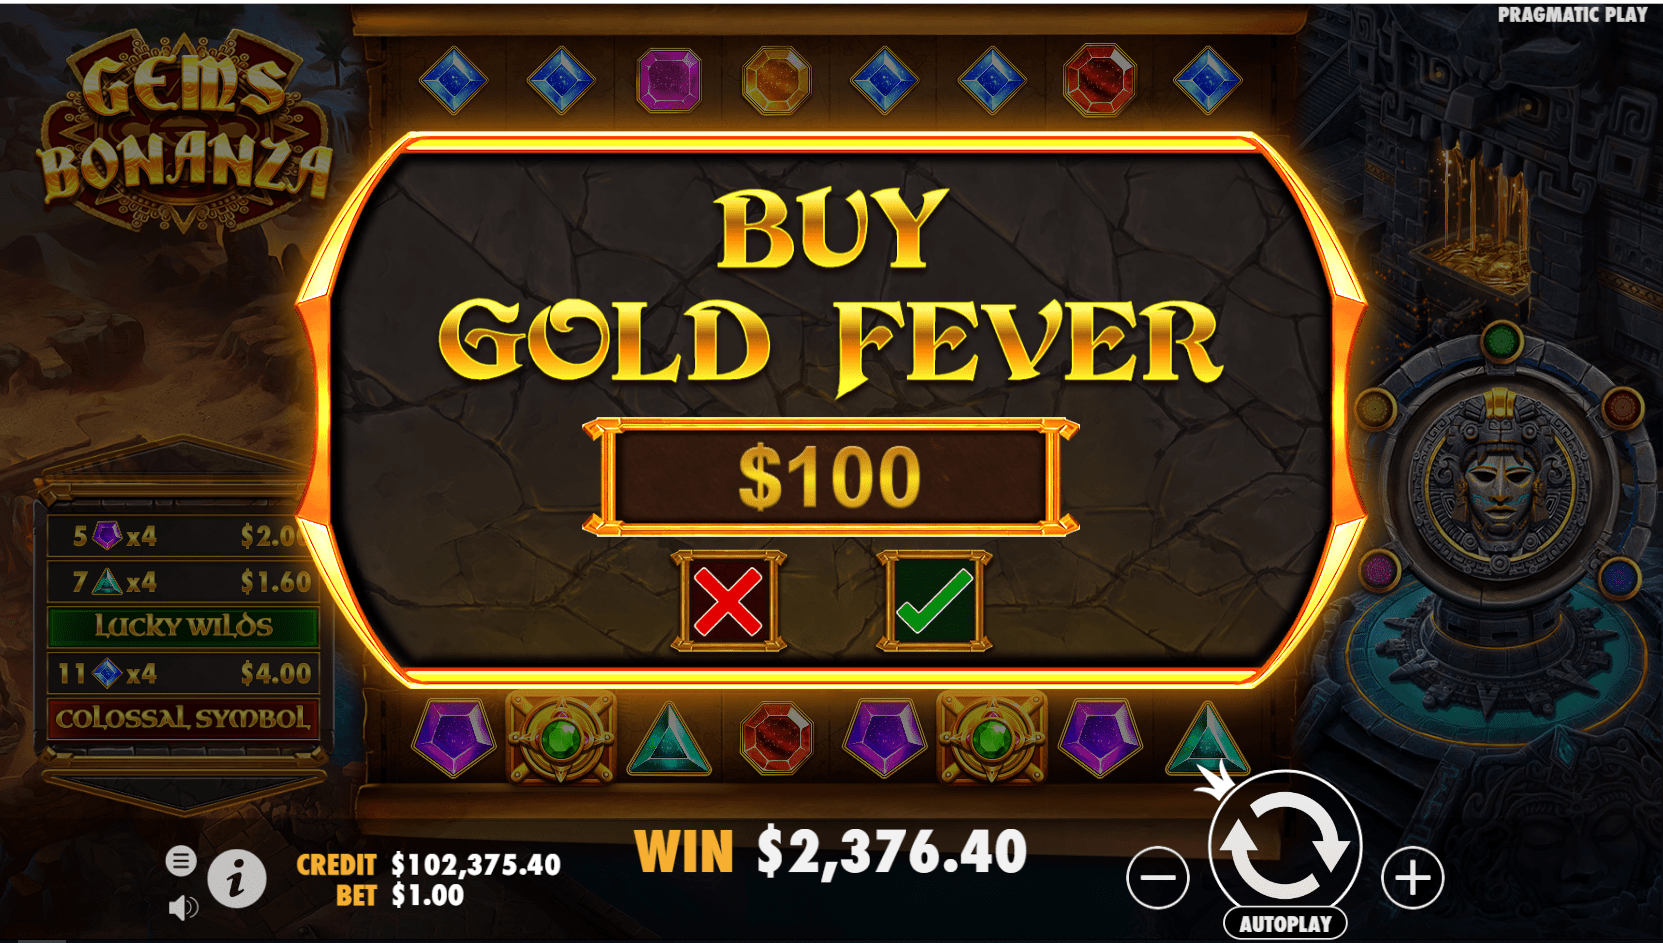 Gems Bonanza video slot buy bonus